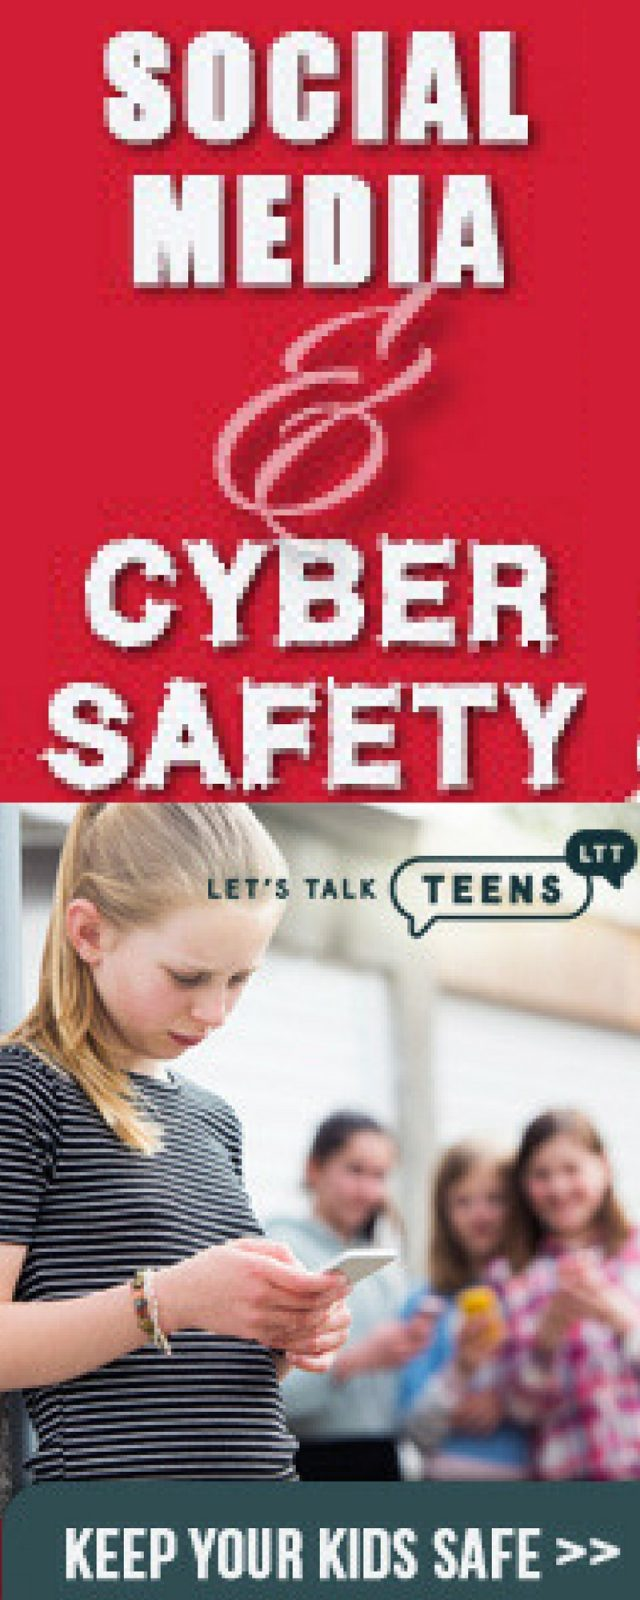 Internet Safety for Kids and Teens - Keep your child safe on social media and the internet. #socialmedia #teensandtechnology #cyberbullying